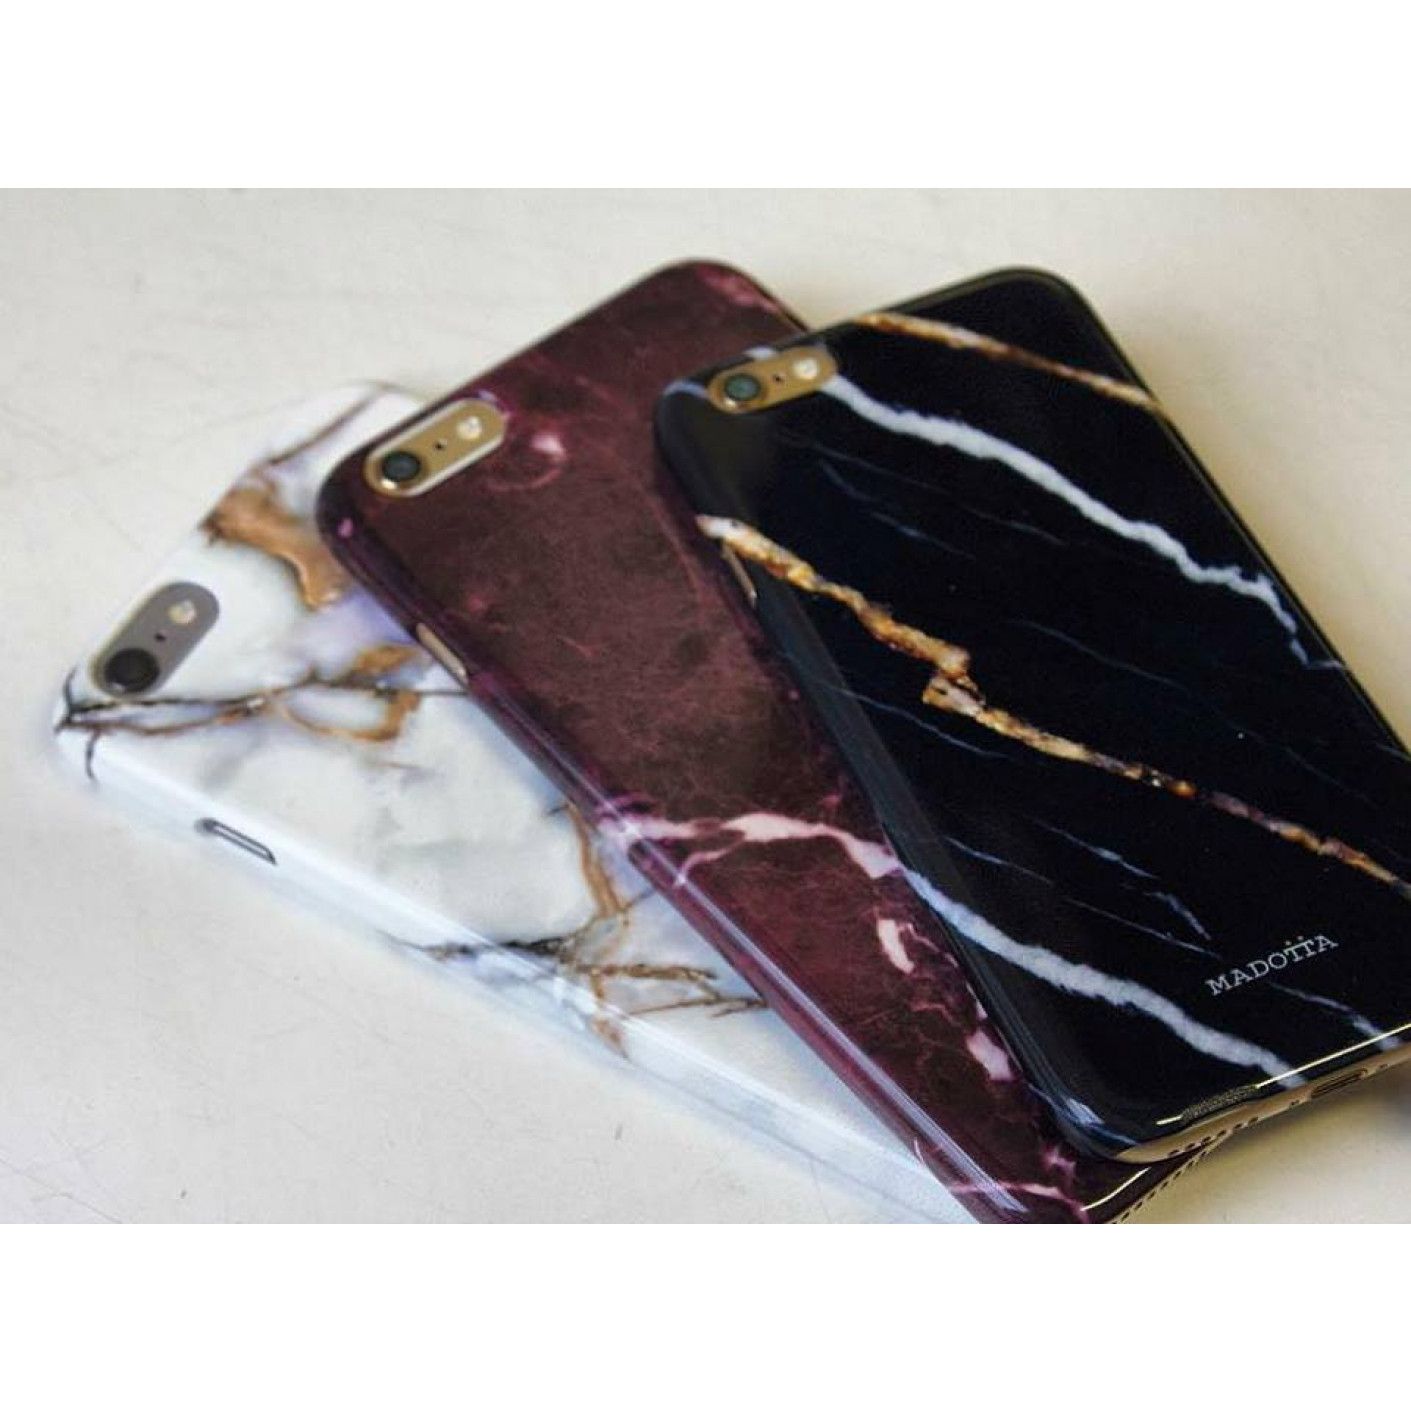 Marble Print Smartphone Case   Red Wine